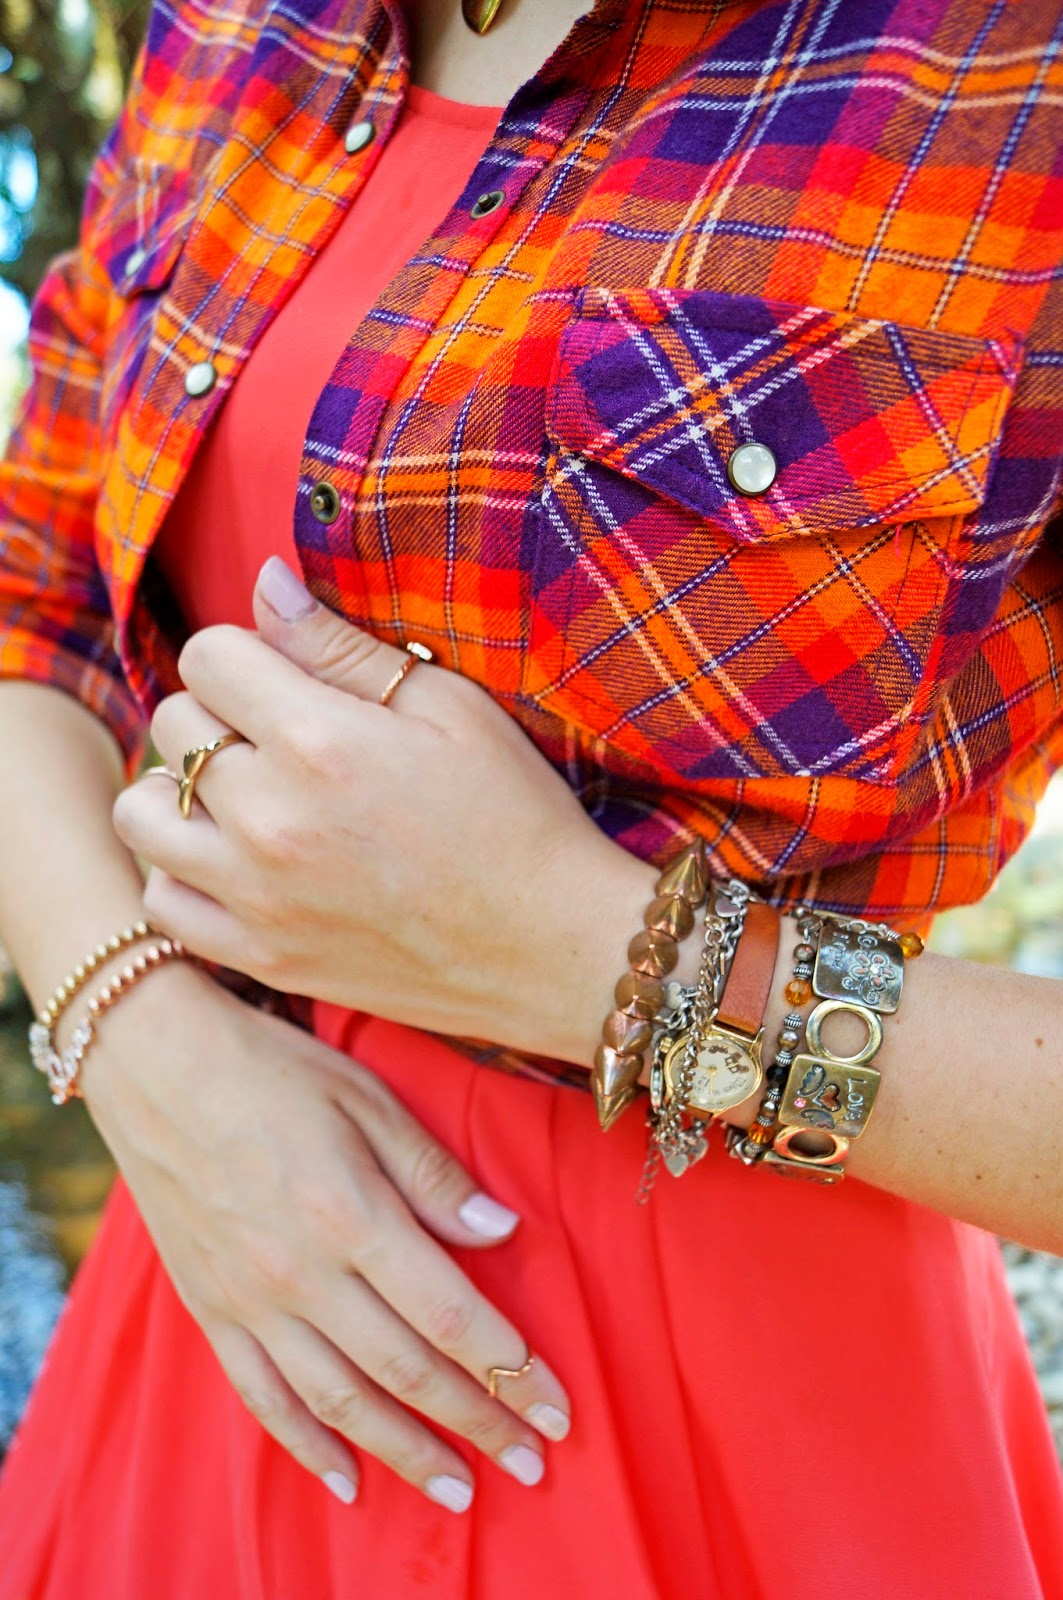 daily outfits, forever 21 dress, plaid shirt outfit, orange dress outfit, comfy outfit, casual outfit